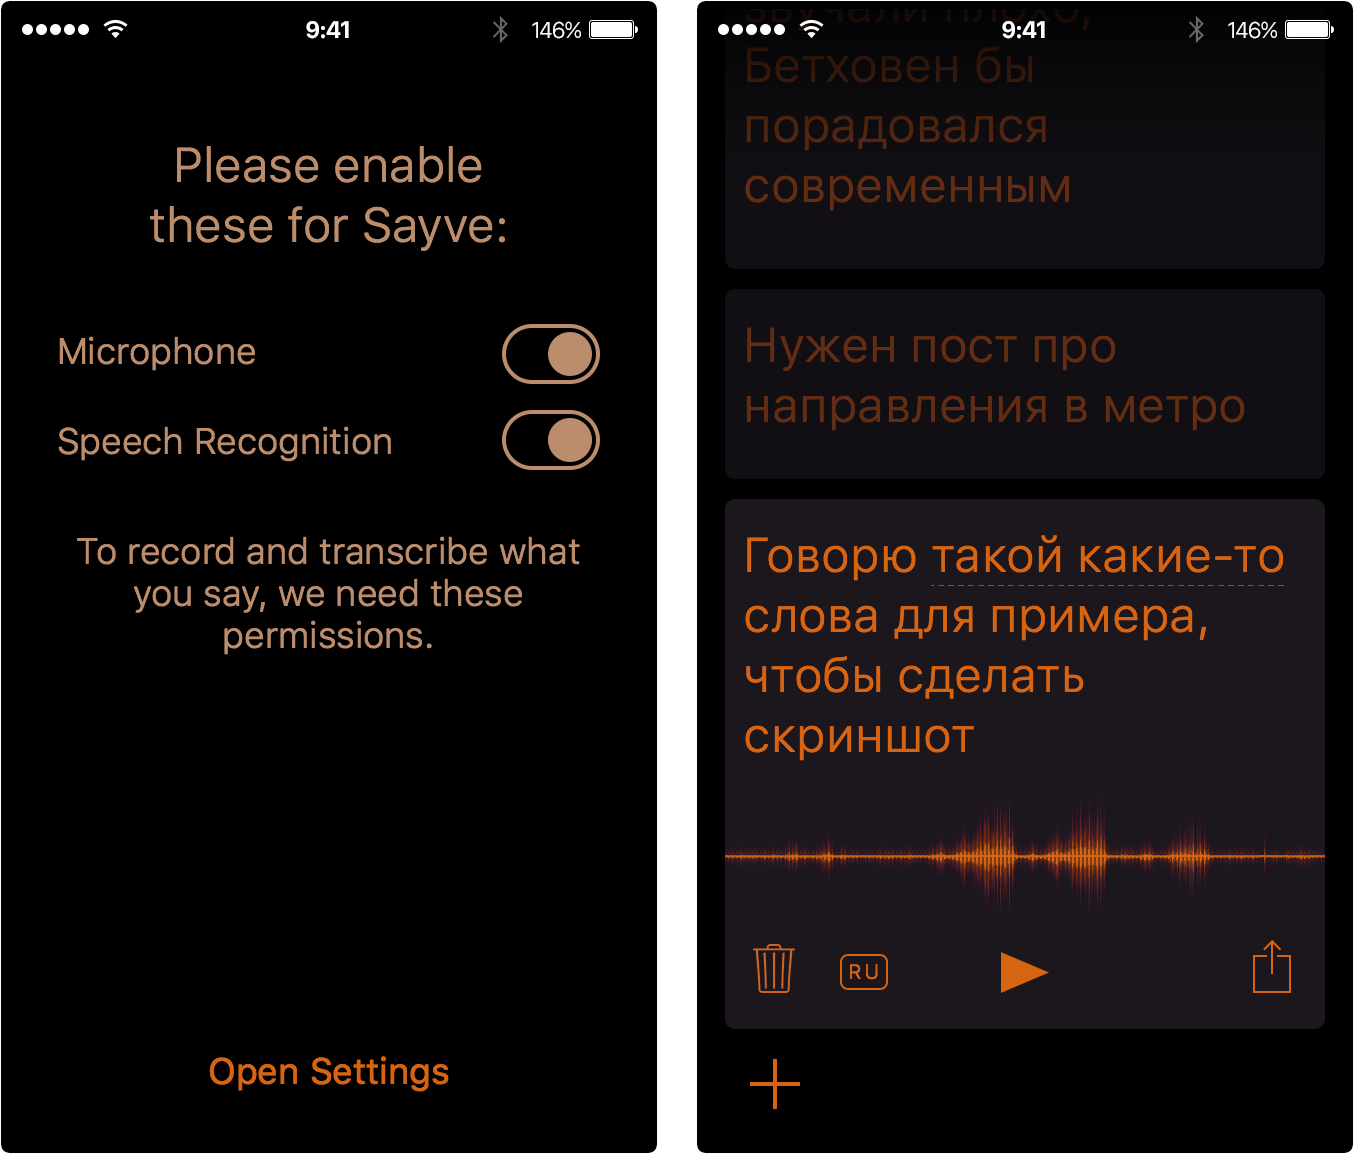 The revolution in the mobile user interface